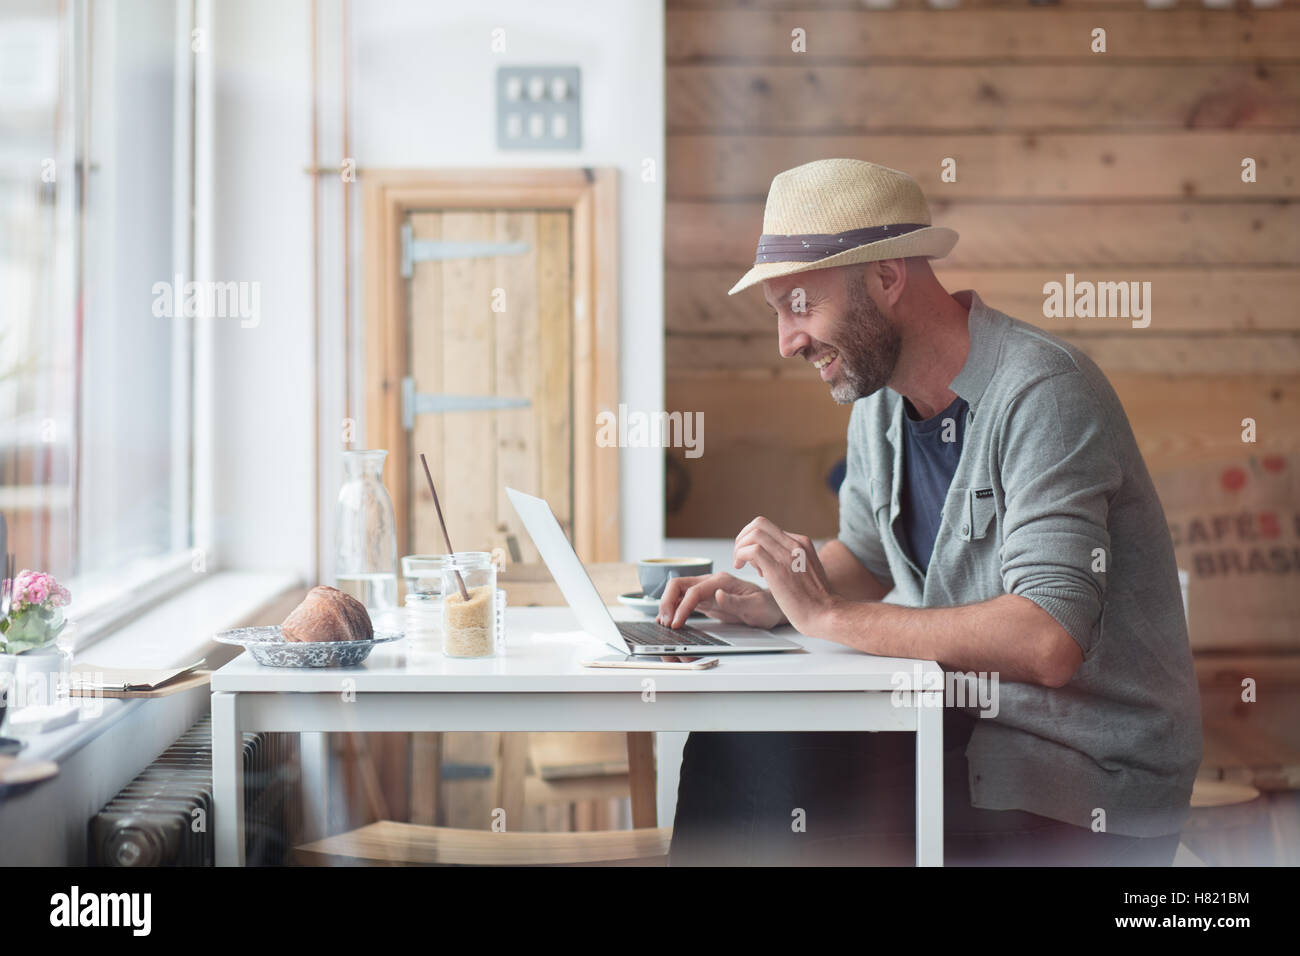 Mid 30s man working at laptop in cafe - Stock Image